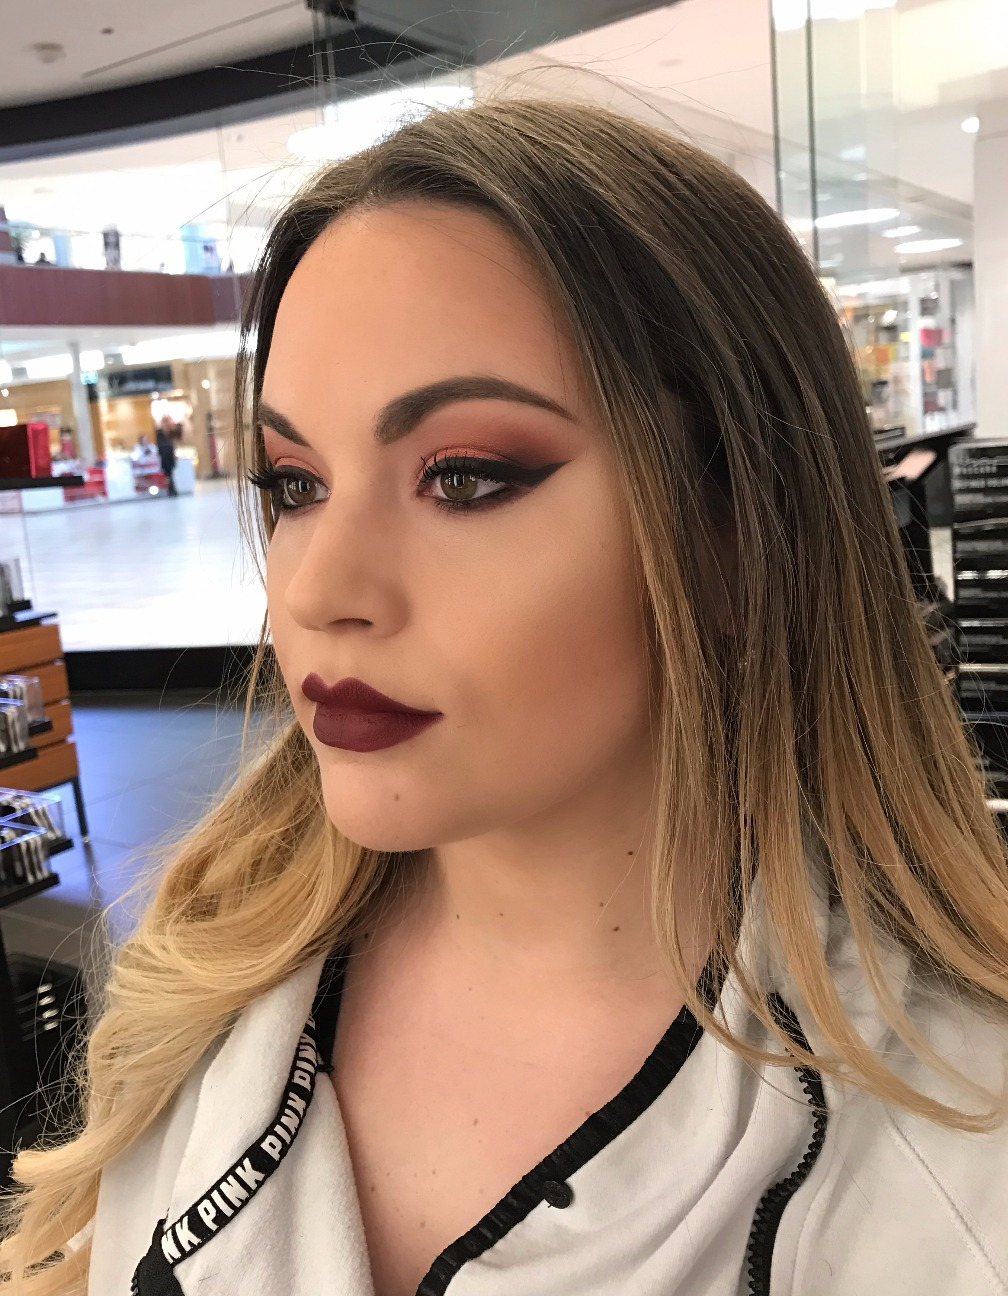 21st birthday makeup